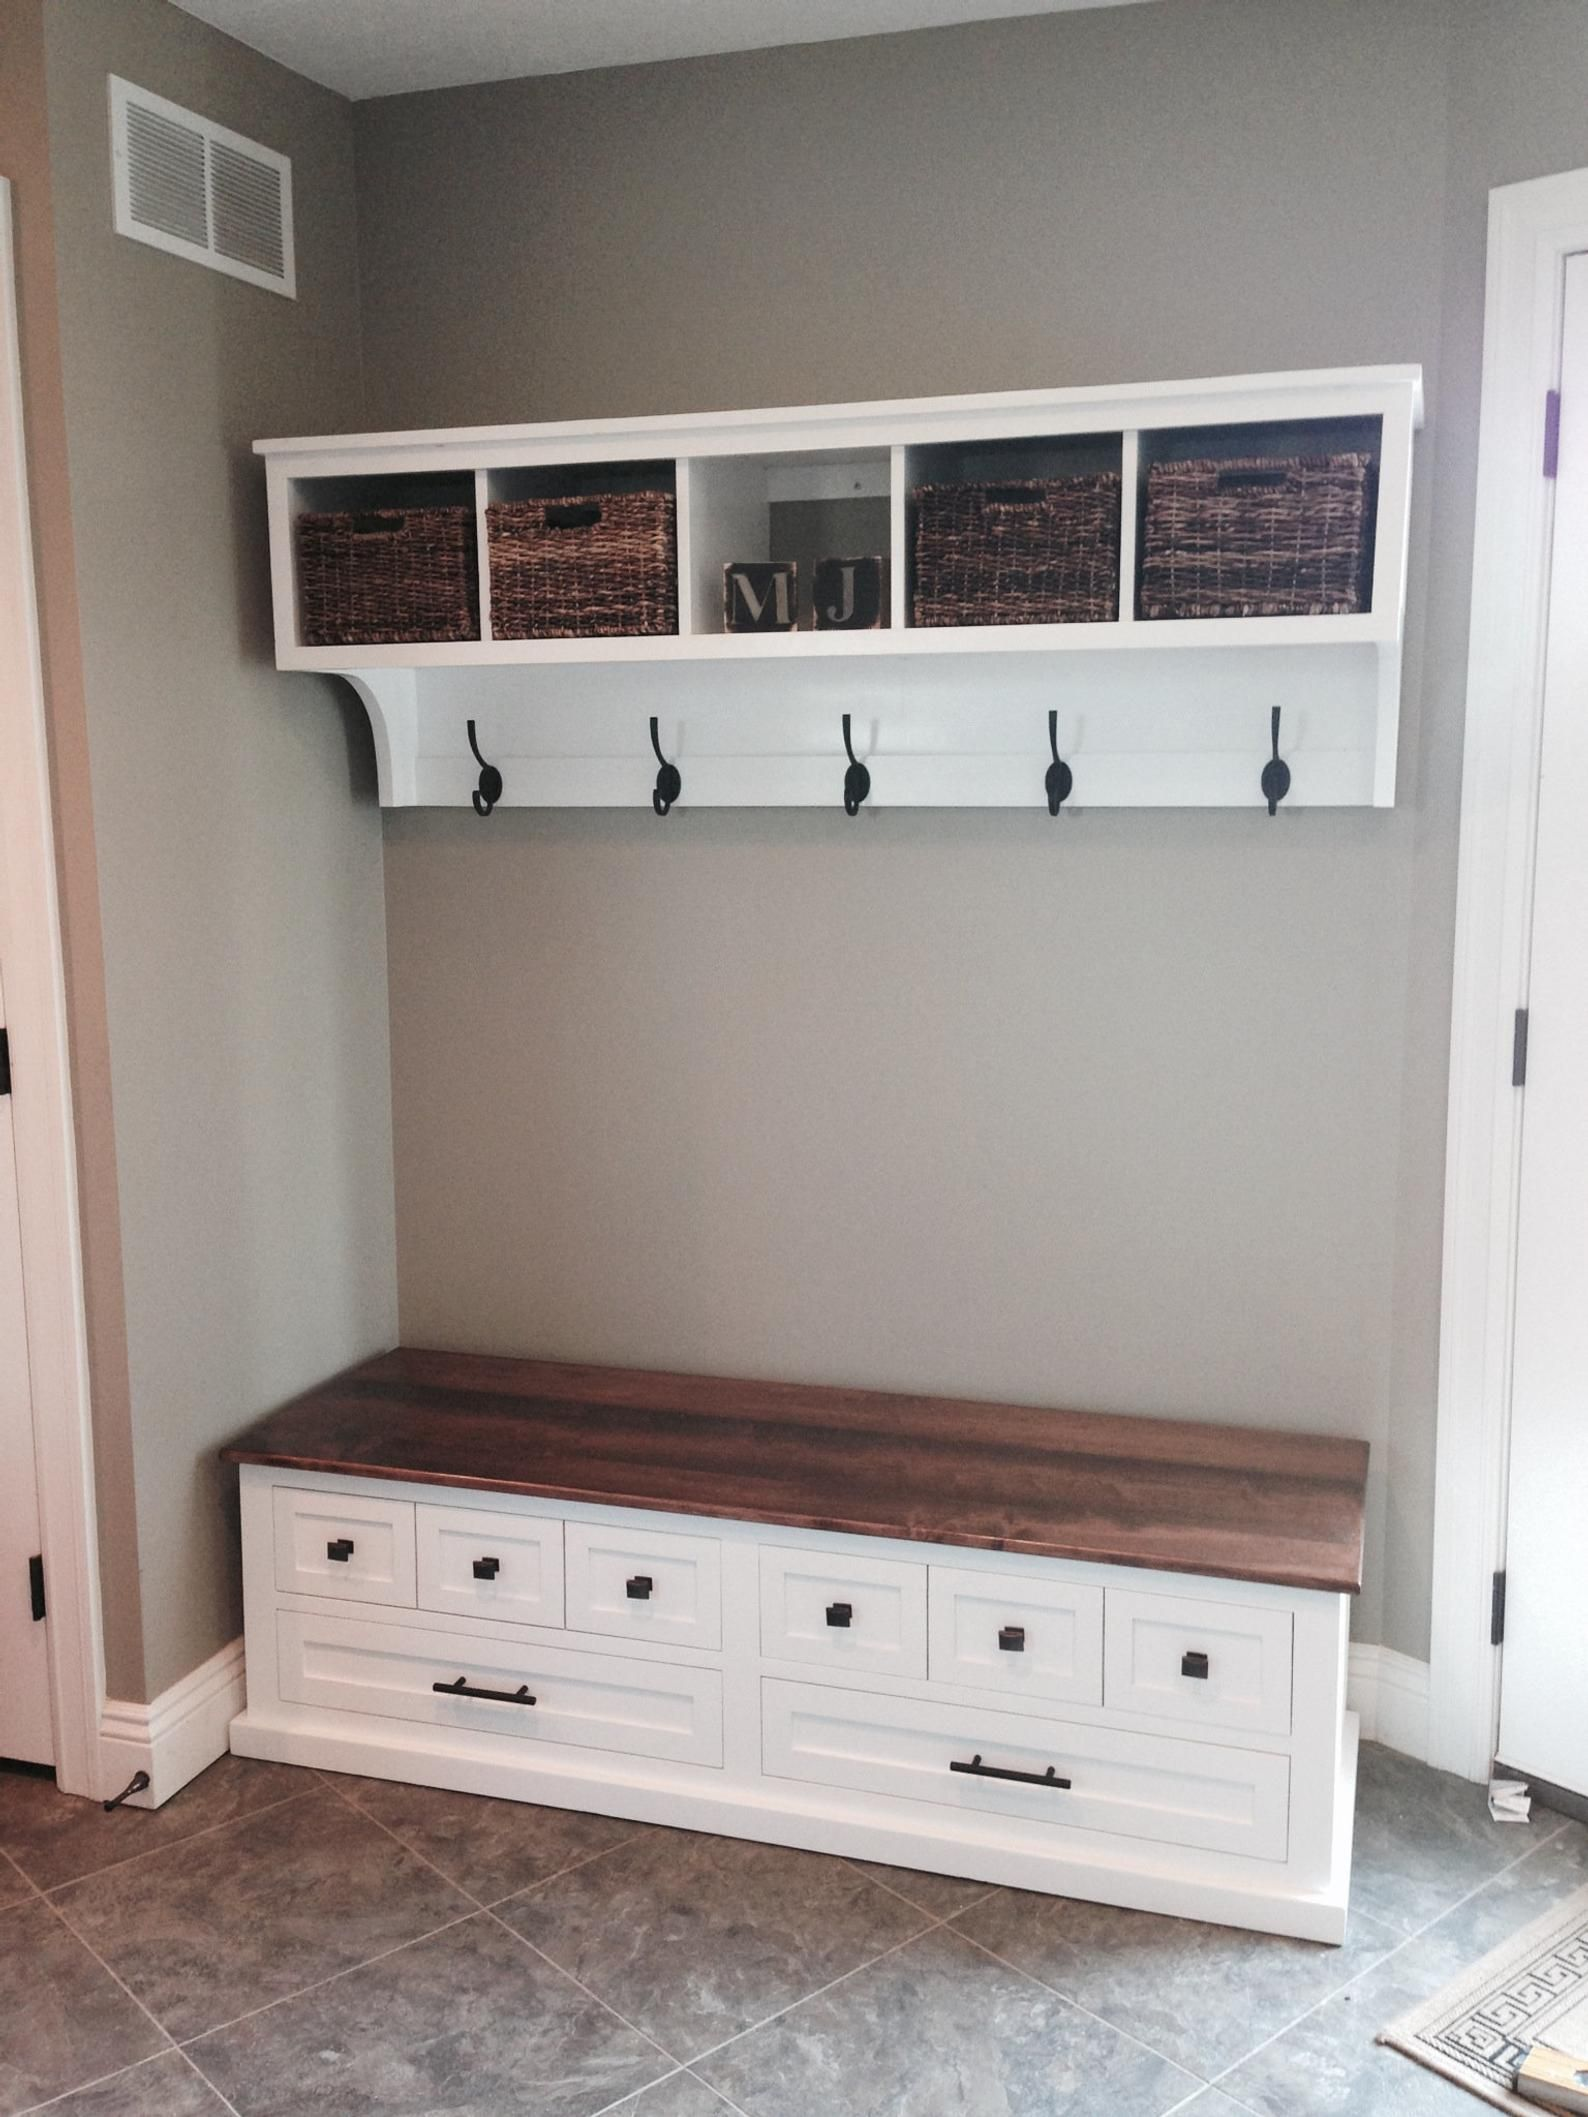 Coat Rack And Bench Mudroom Hallway Laundry Room Entryway Bench And Shelf Set In 2020 Entryway Shoe Storage Shoe Storage Bench Entryway Entryway Bench Storage